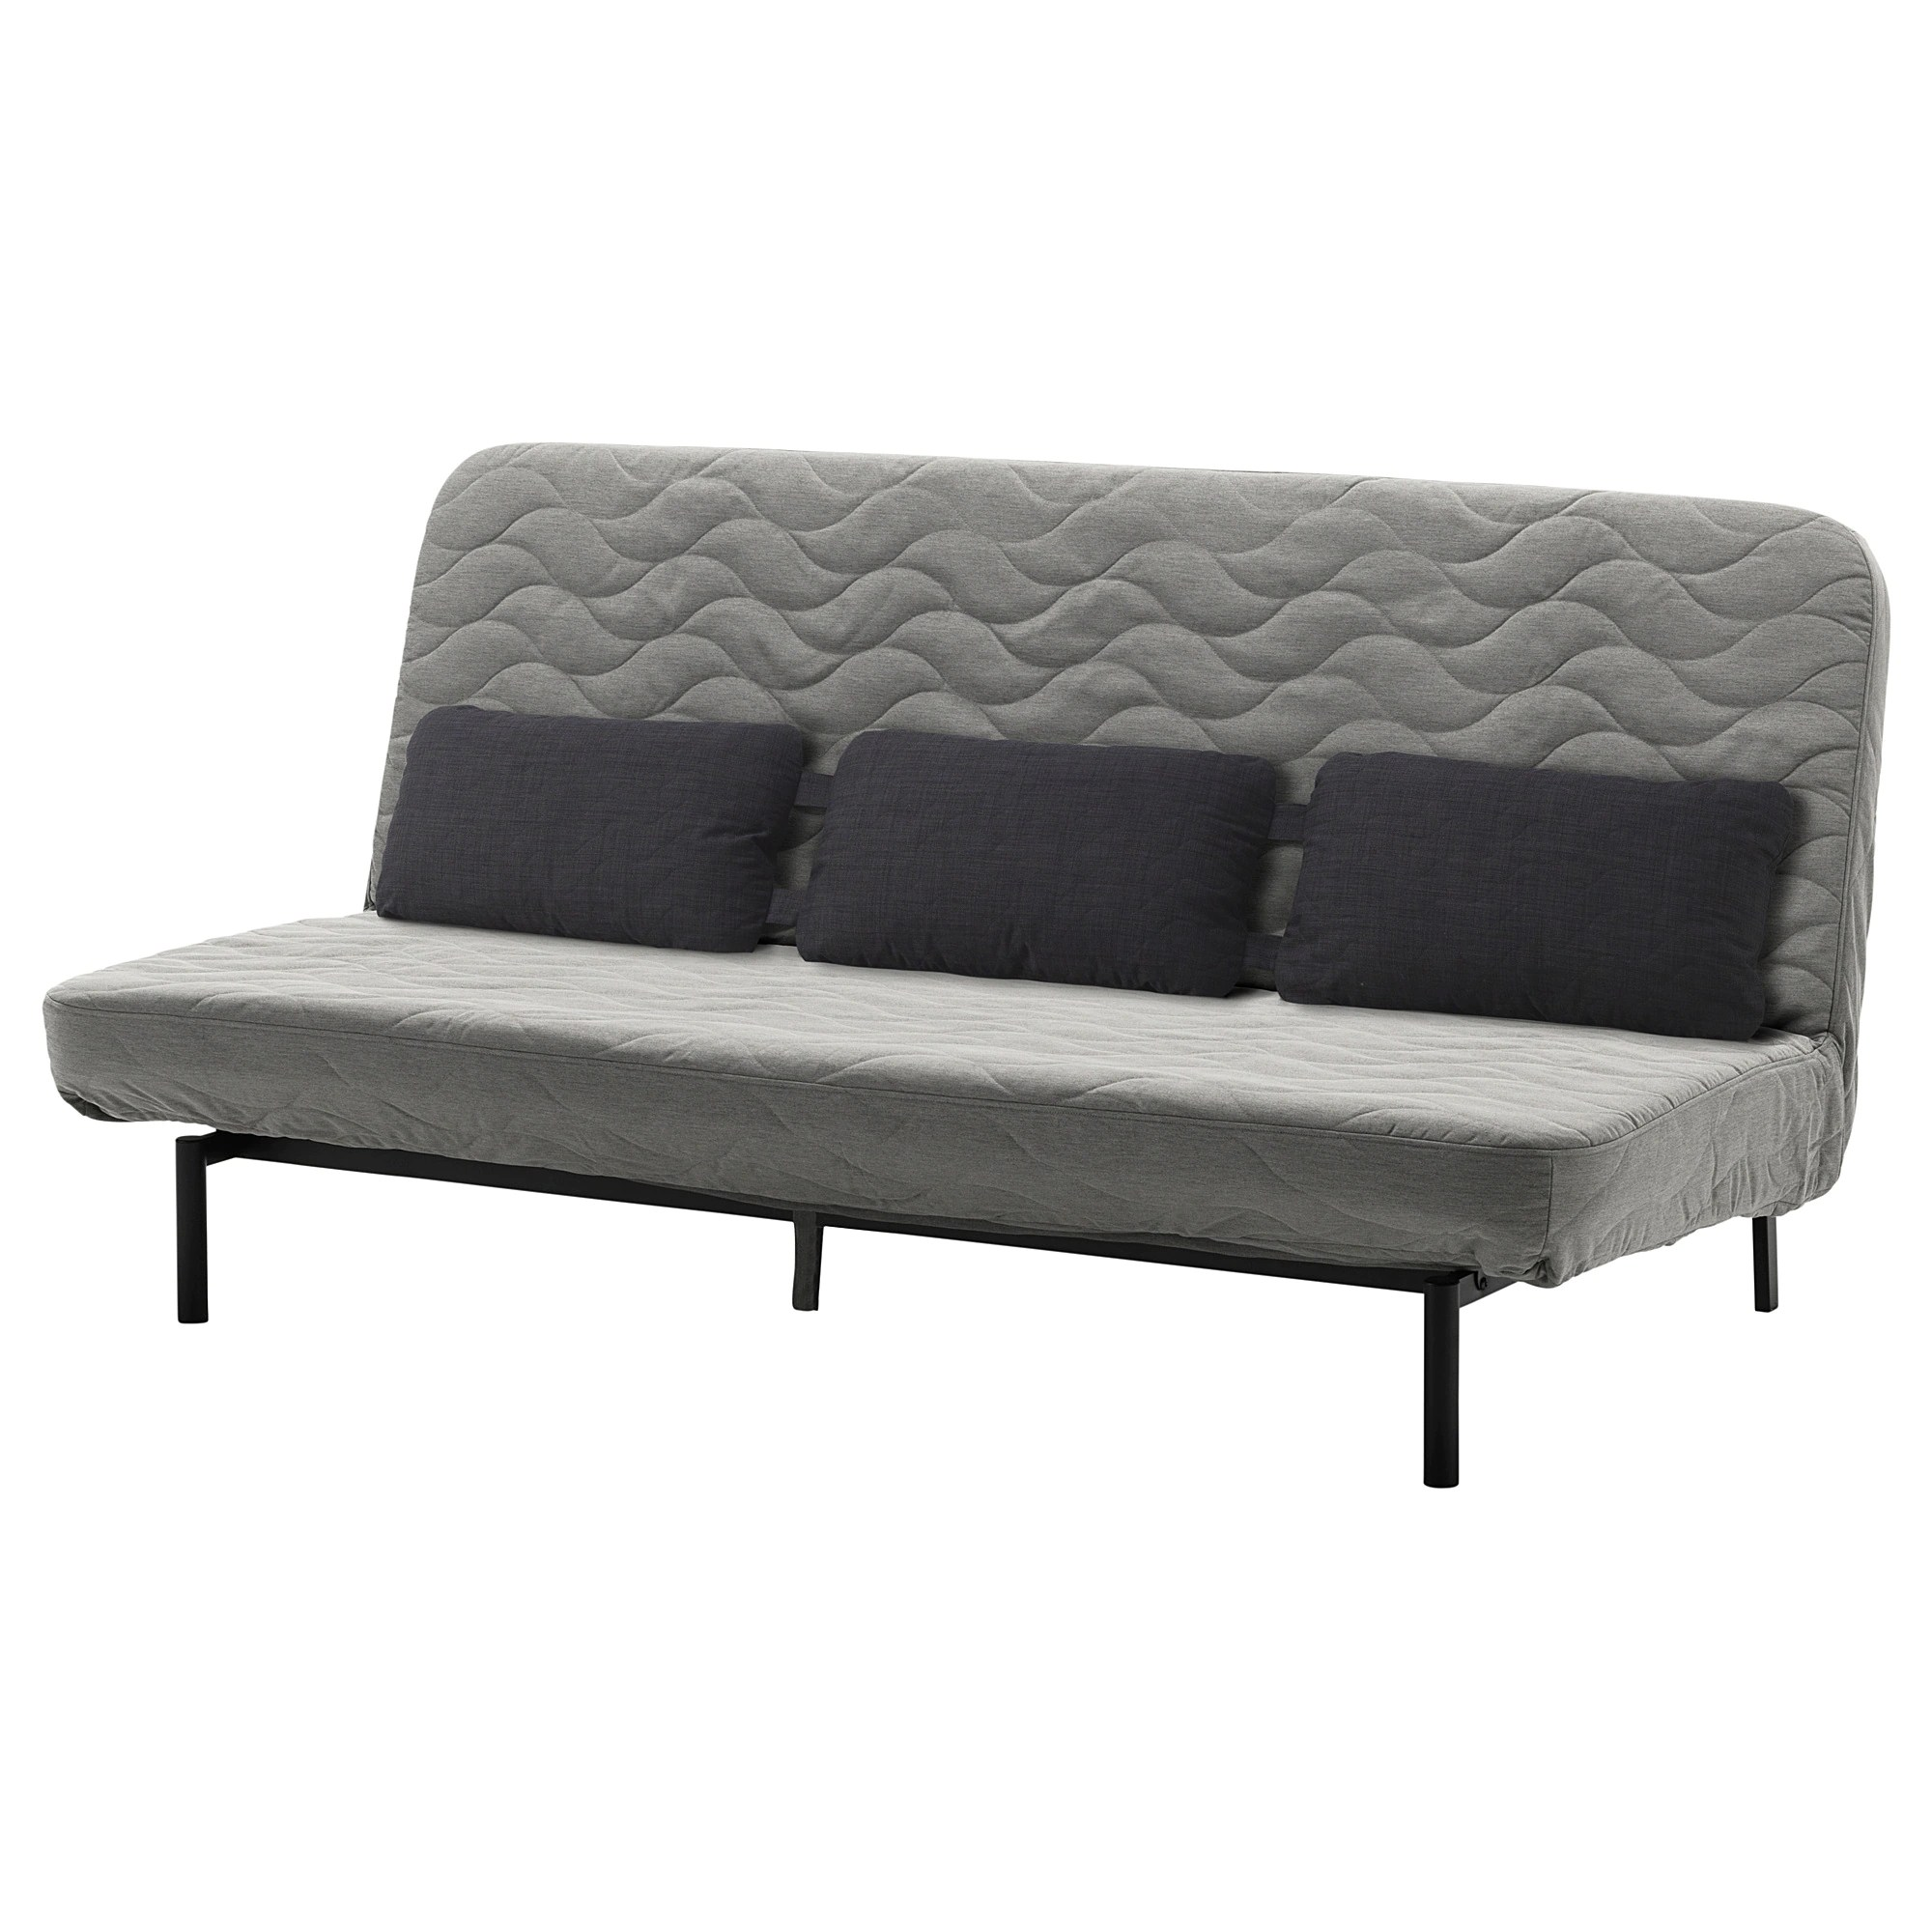 Sofa Cushions That Don't Go Flat Nyhamn Sleeper Sofa With Triple Cushion With Pocket Spring Mattress Knisa Gray Beige